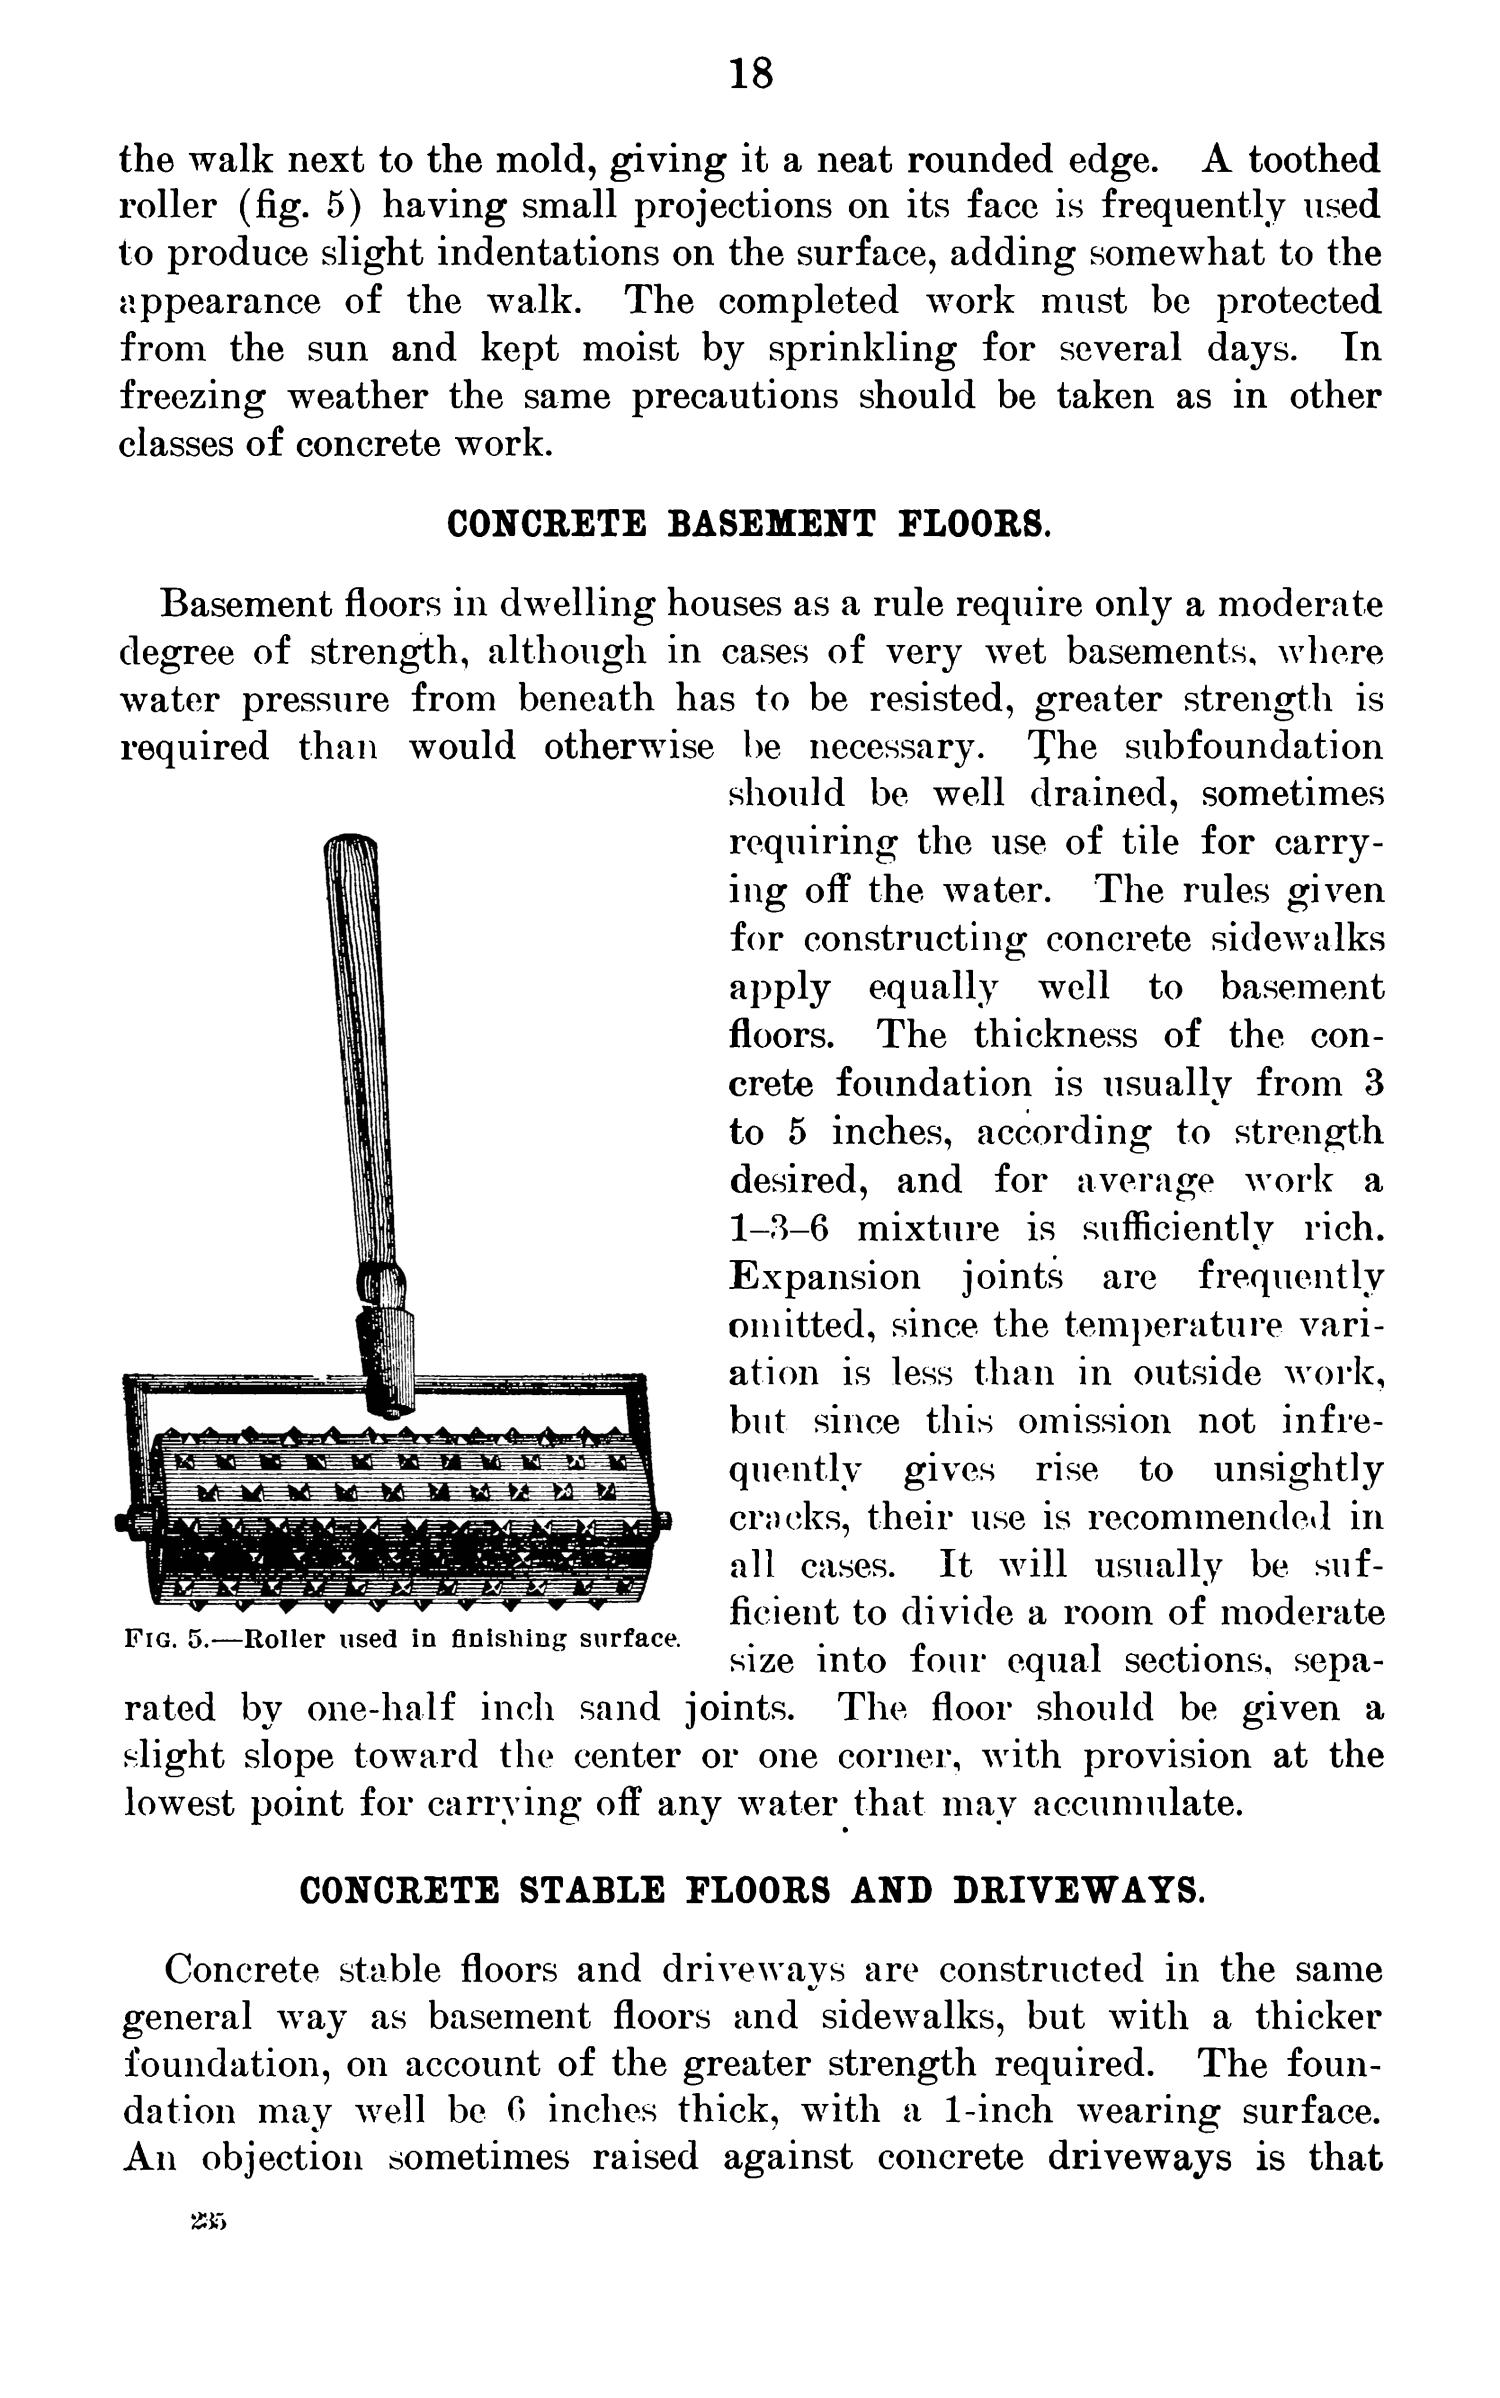 Cement Mortar and Concrete: Preparation and Use for Farm